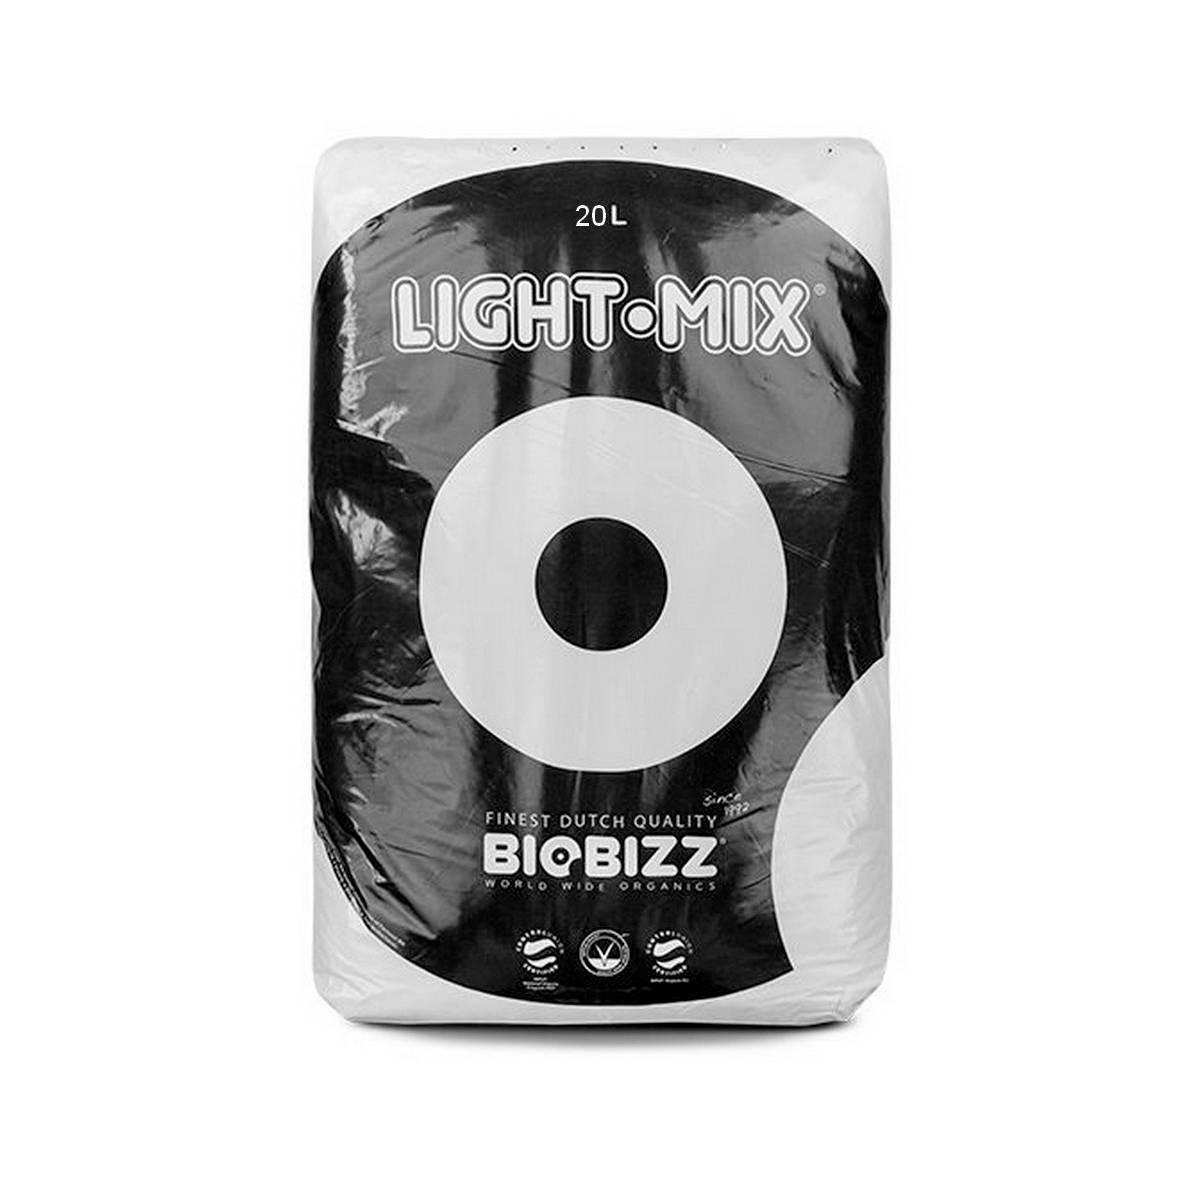 Cutting pack - SpectraLINE 60cm x4 - LED horticultural lighting for young plants and cuttings